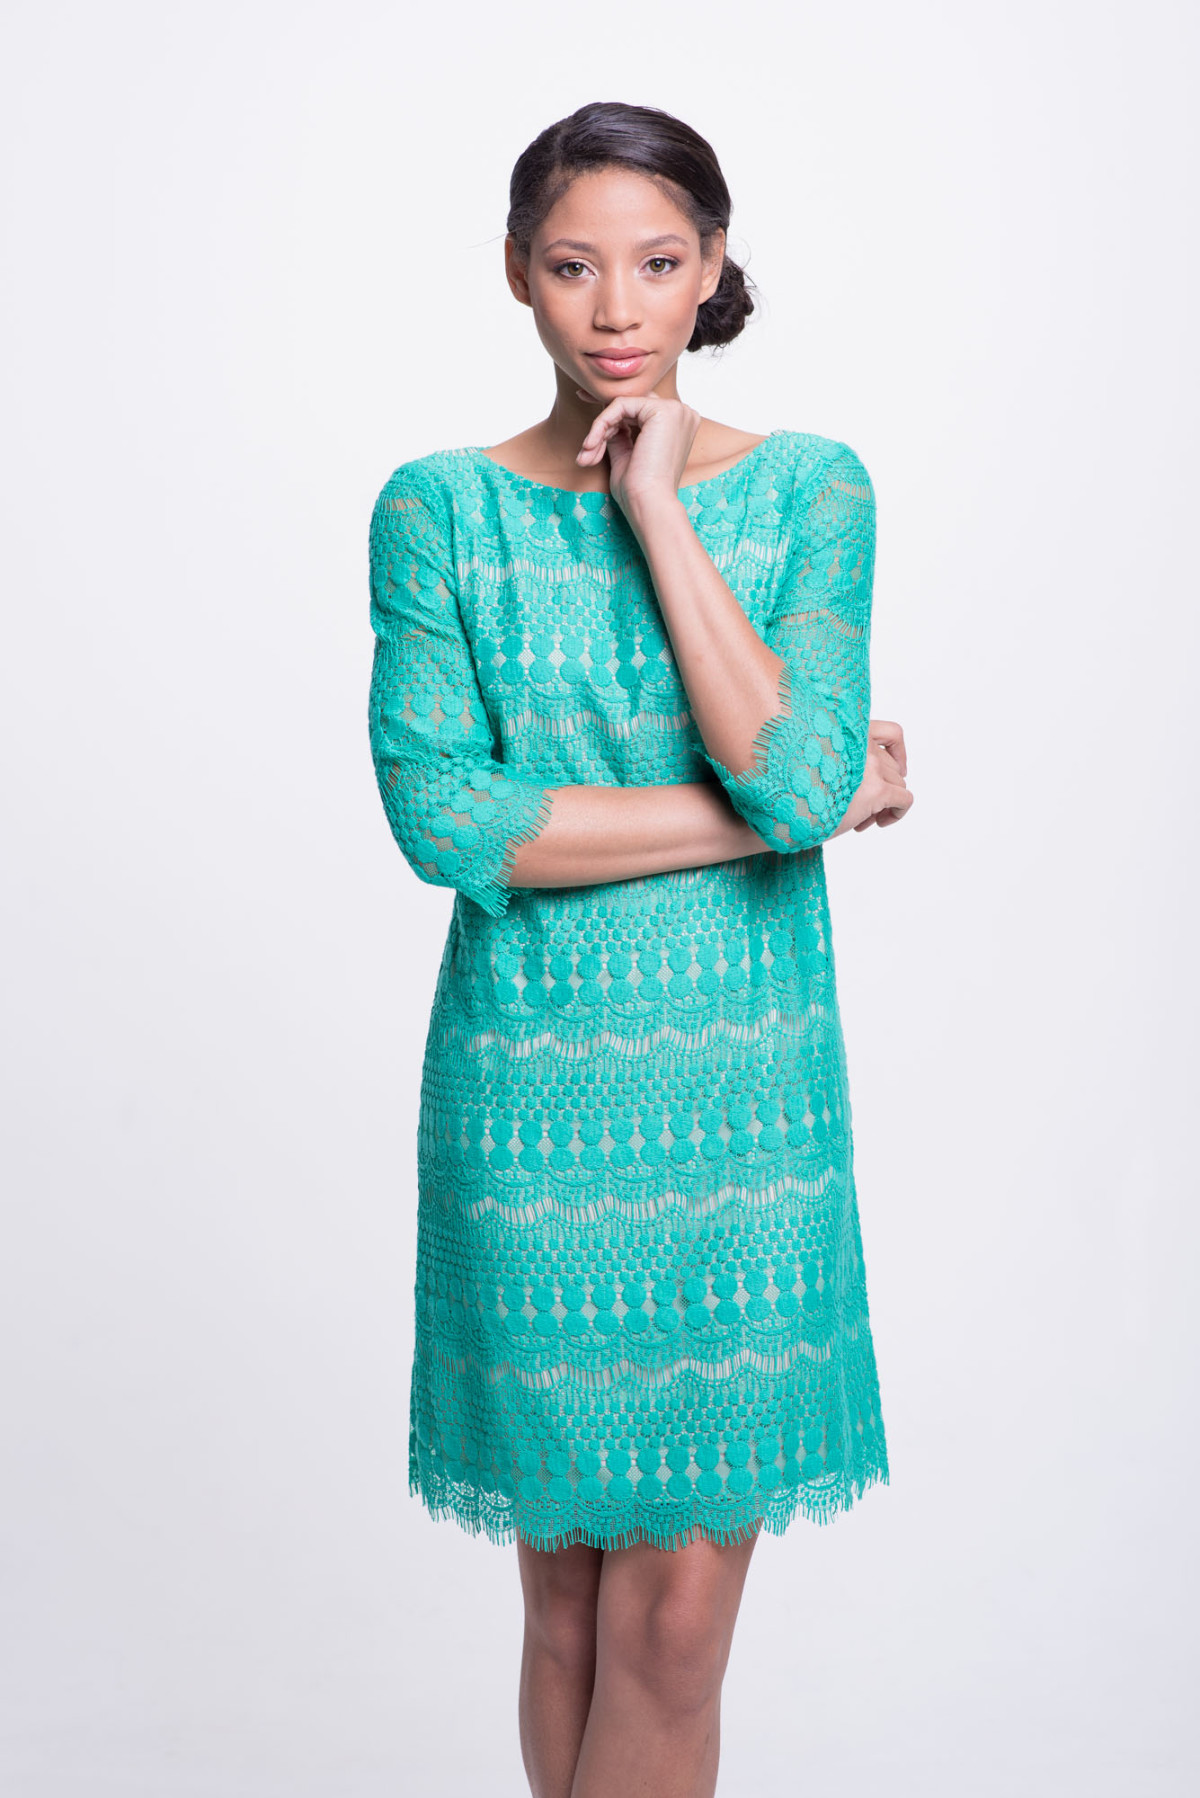 DIDomenico Design Spring Teal lace Dress